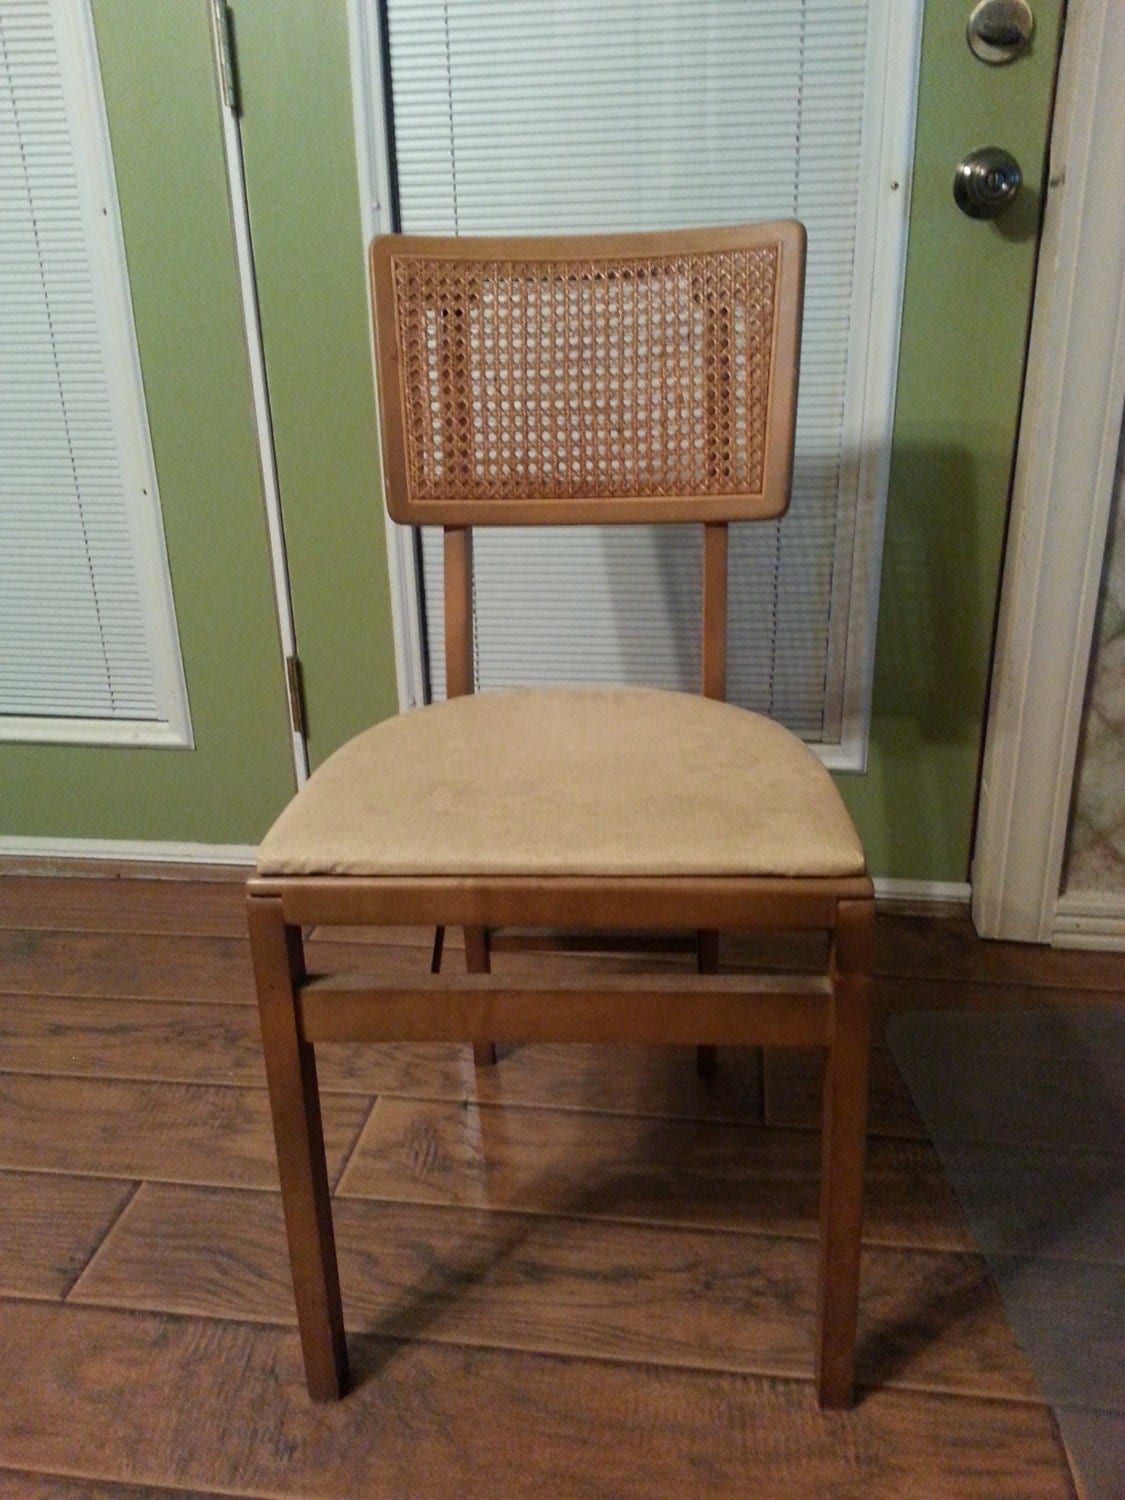 RESERVED Vintage Stakmore folding chair cane back wood